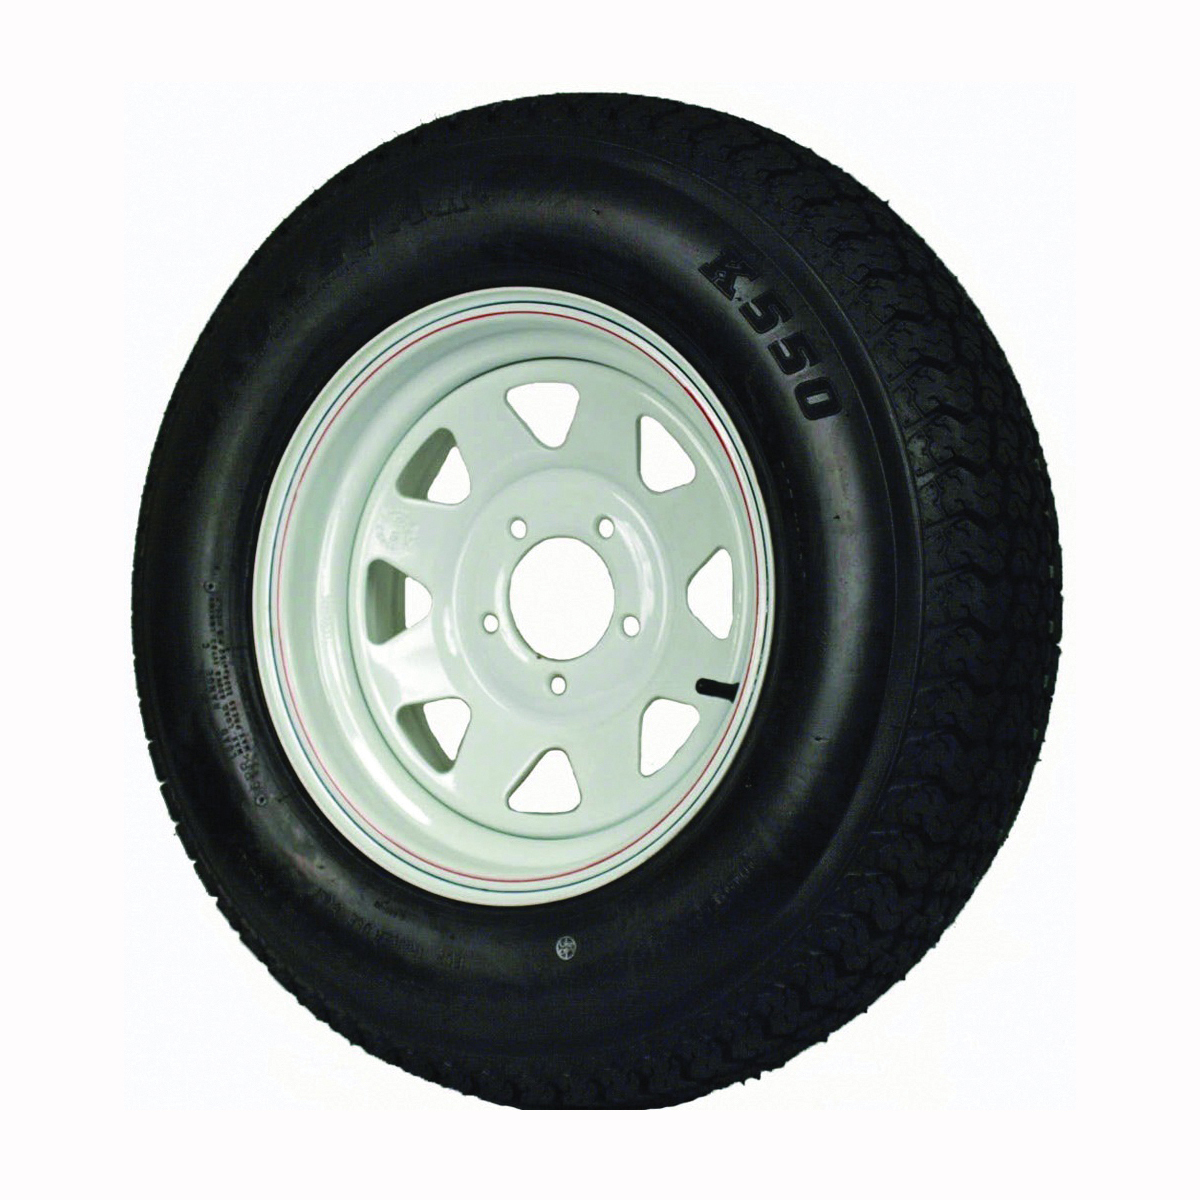 Picture of MARTIN WHEEL DM205D4C-5CT/CI Trailer Tire, 1760 lb Withstand, 4-1/2 in Dia Bolt Circle